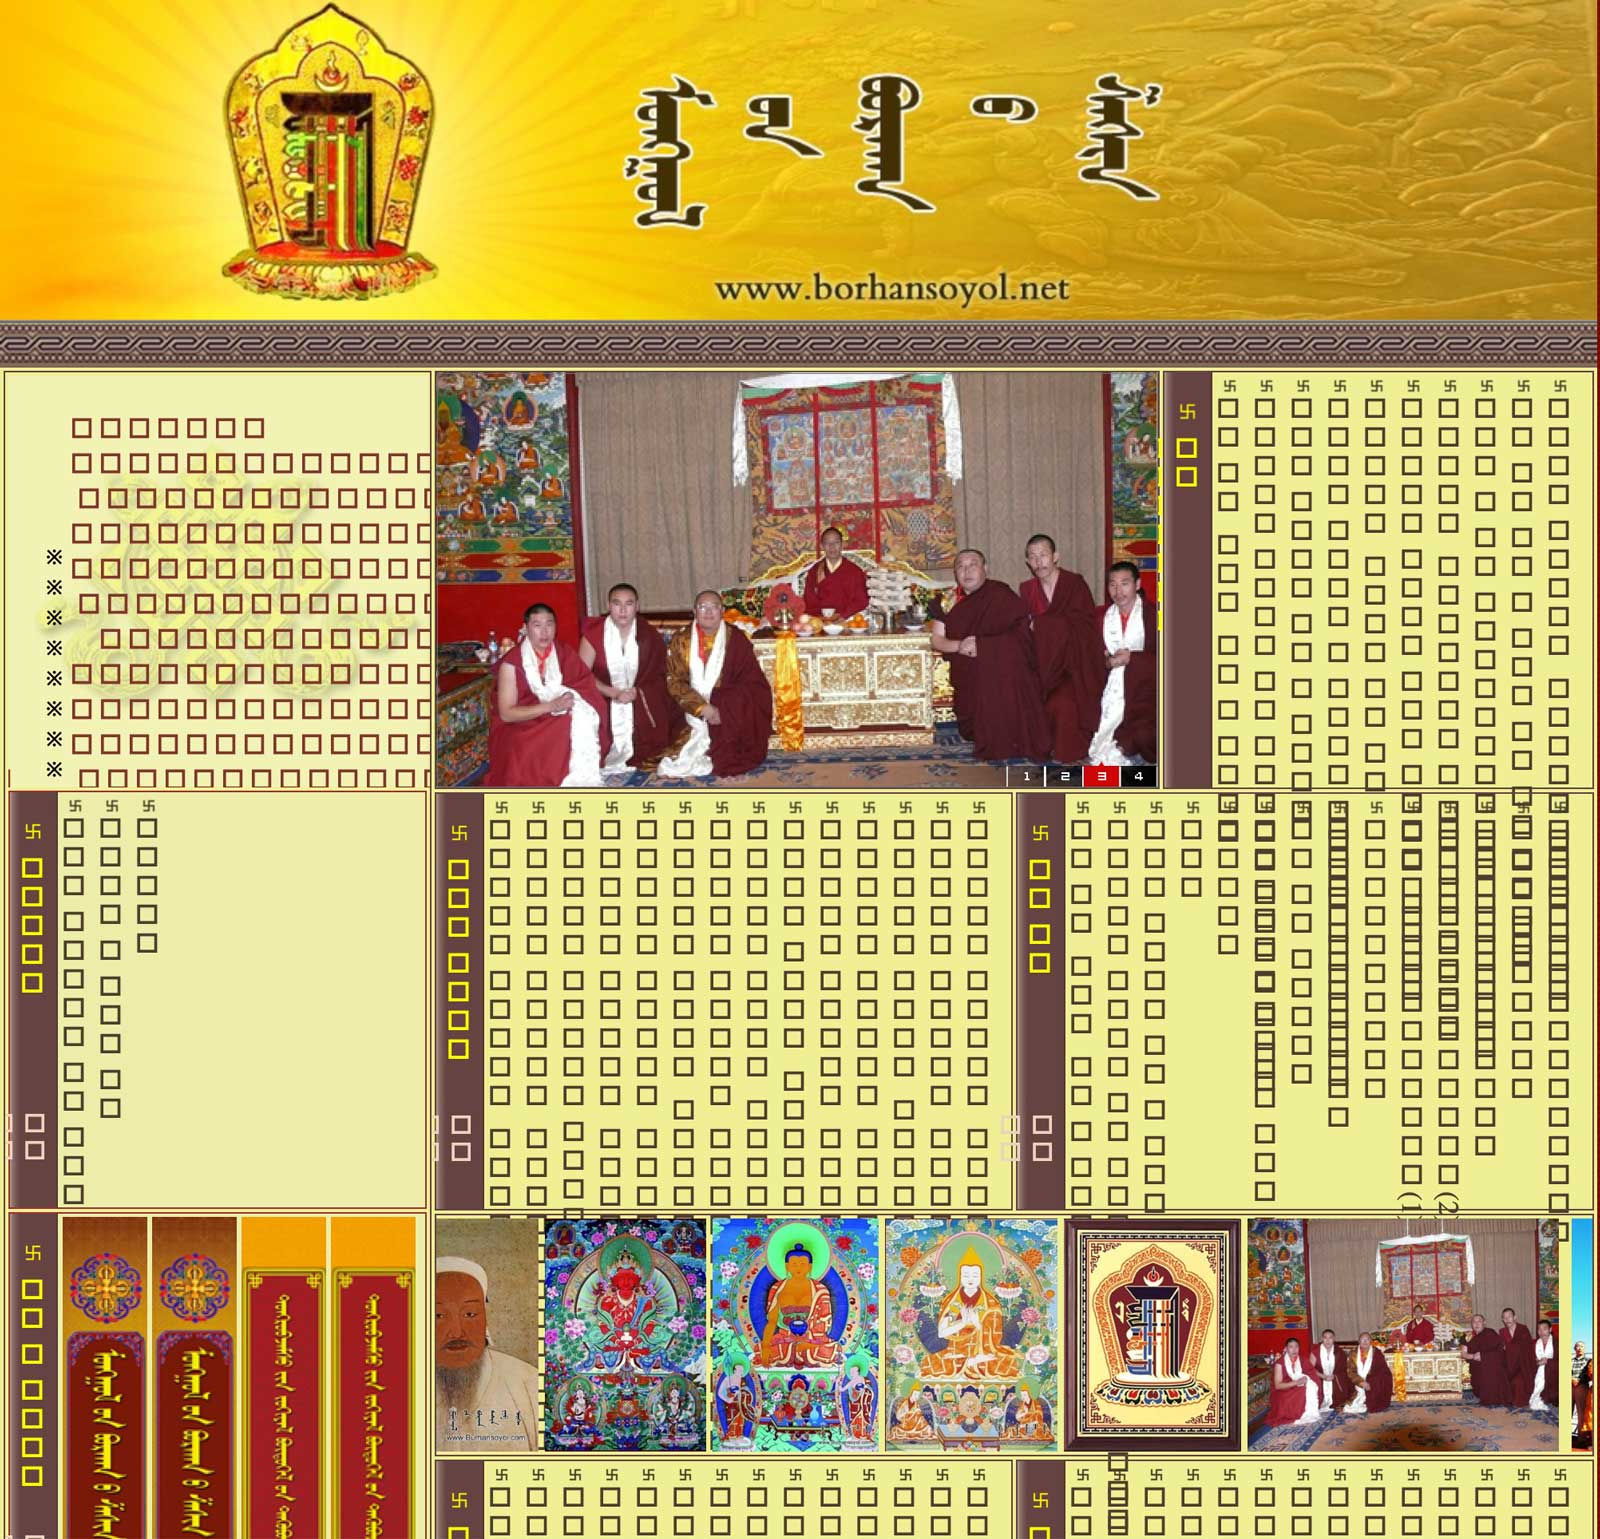 Image 6: Website using the traditional Mongolian script accessed from a standard browser.